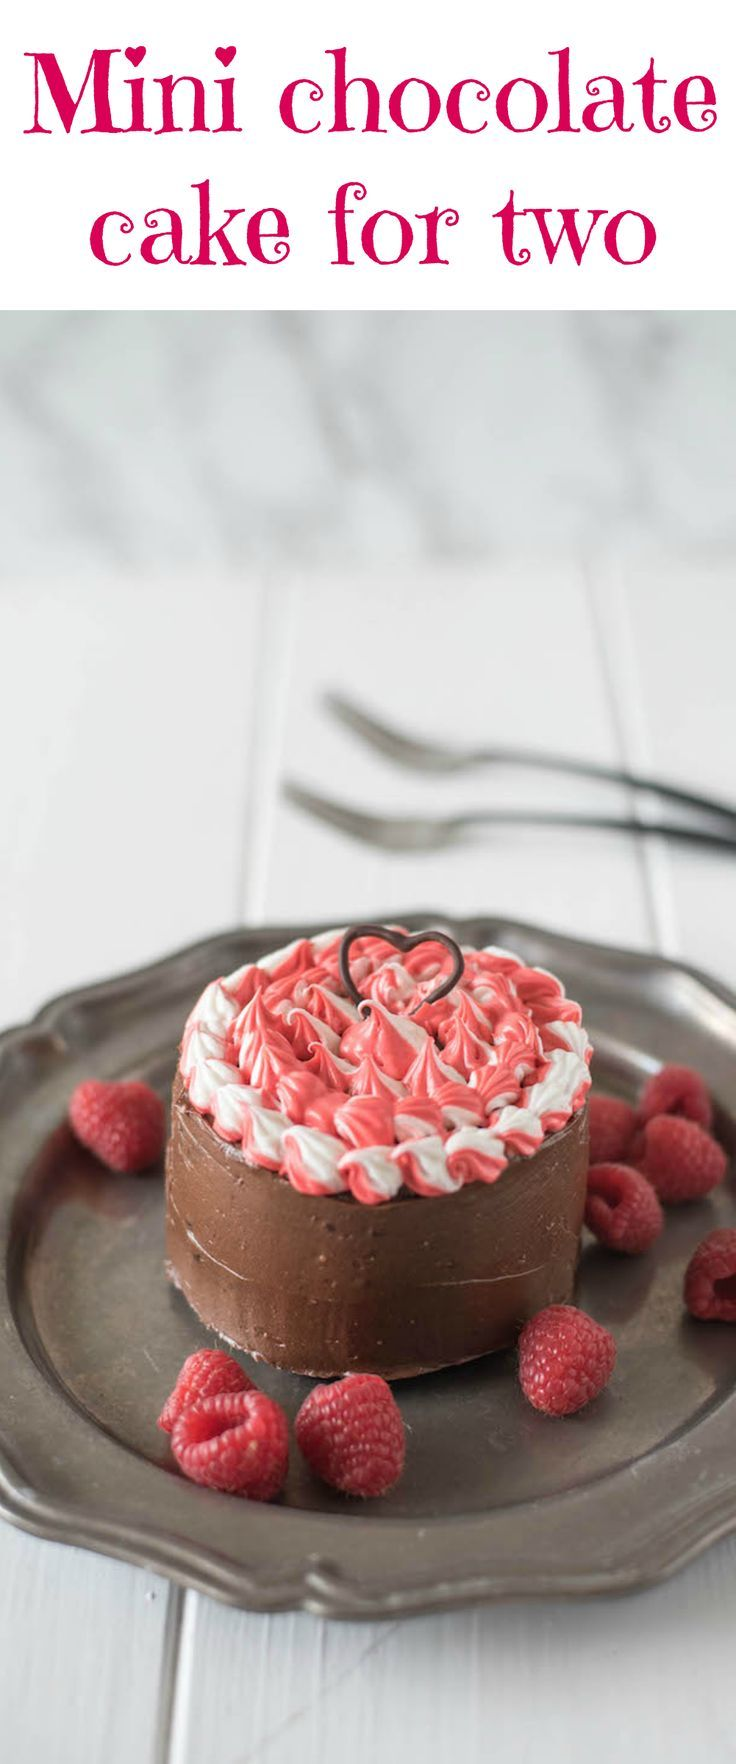 Mini chocolate cake for two is a chocolate lovers dream. Rich chocolate cake is smothered in gorgeous dark chocolate frosting with a little special decorating